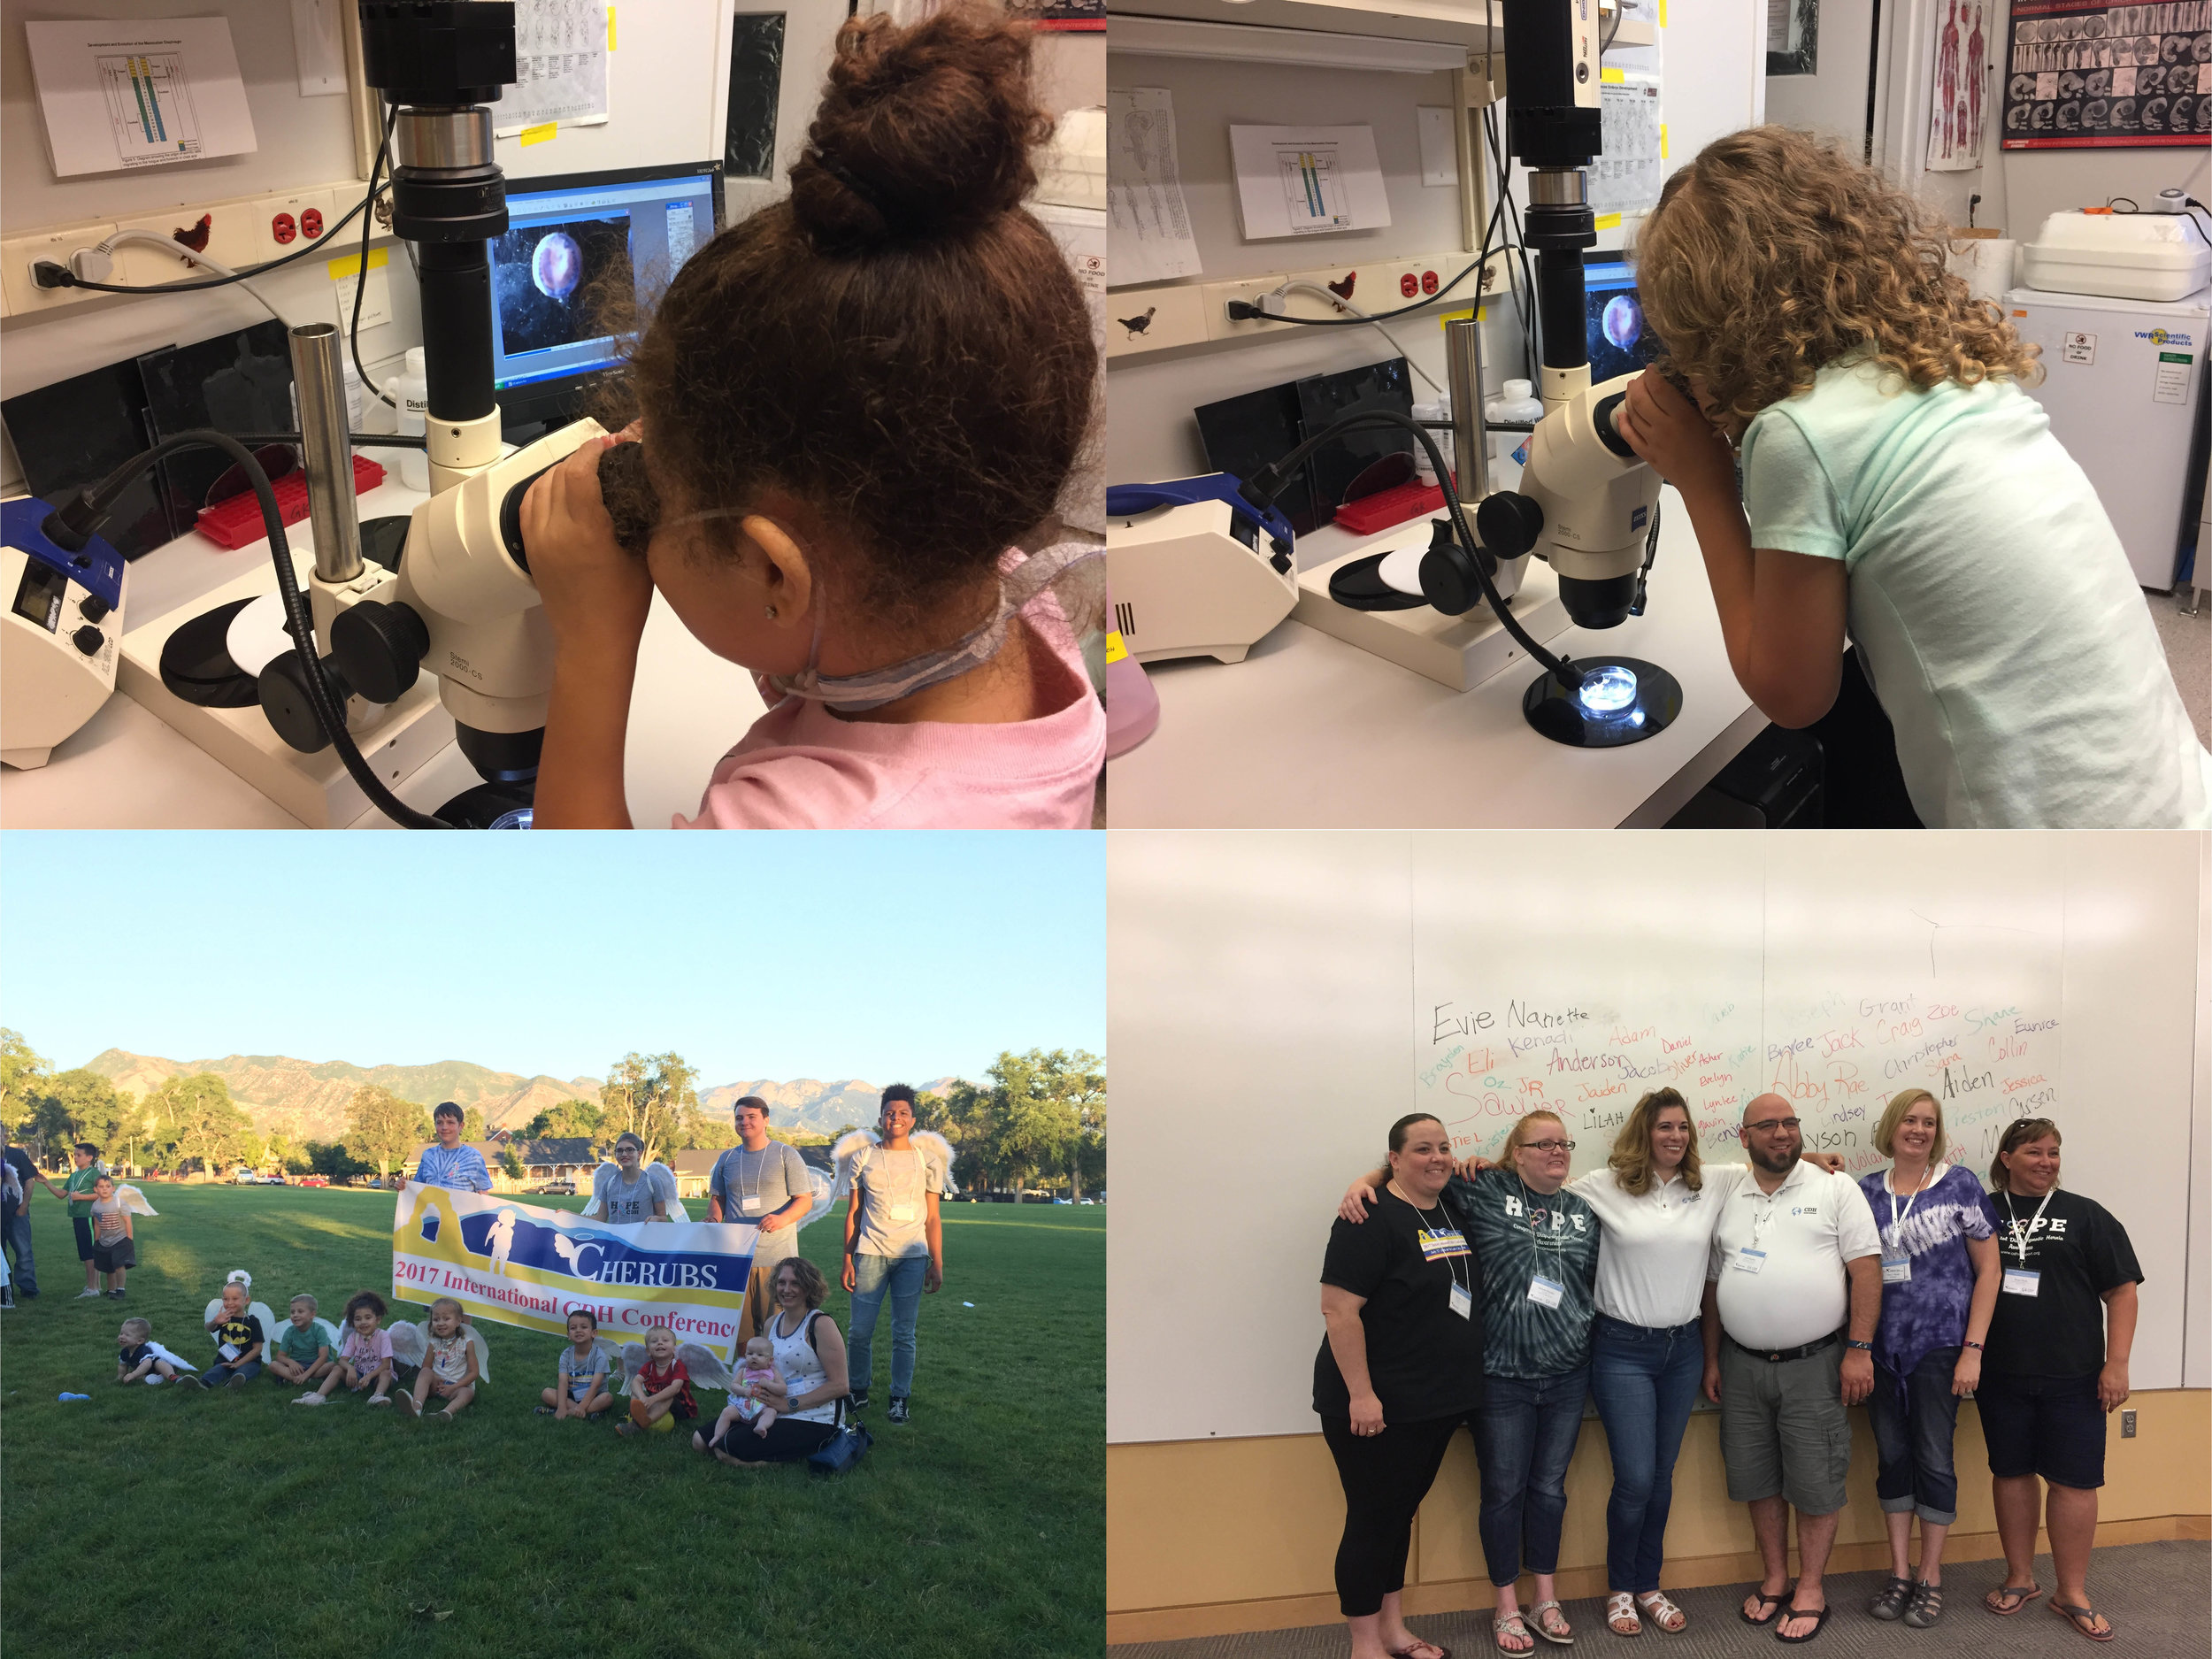 CDH families gather at the University of Utah to share stories, learn about research, and make advocacy plans. Wonderful to have them visit the Kardon lab!